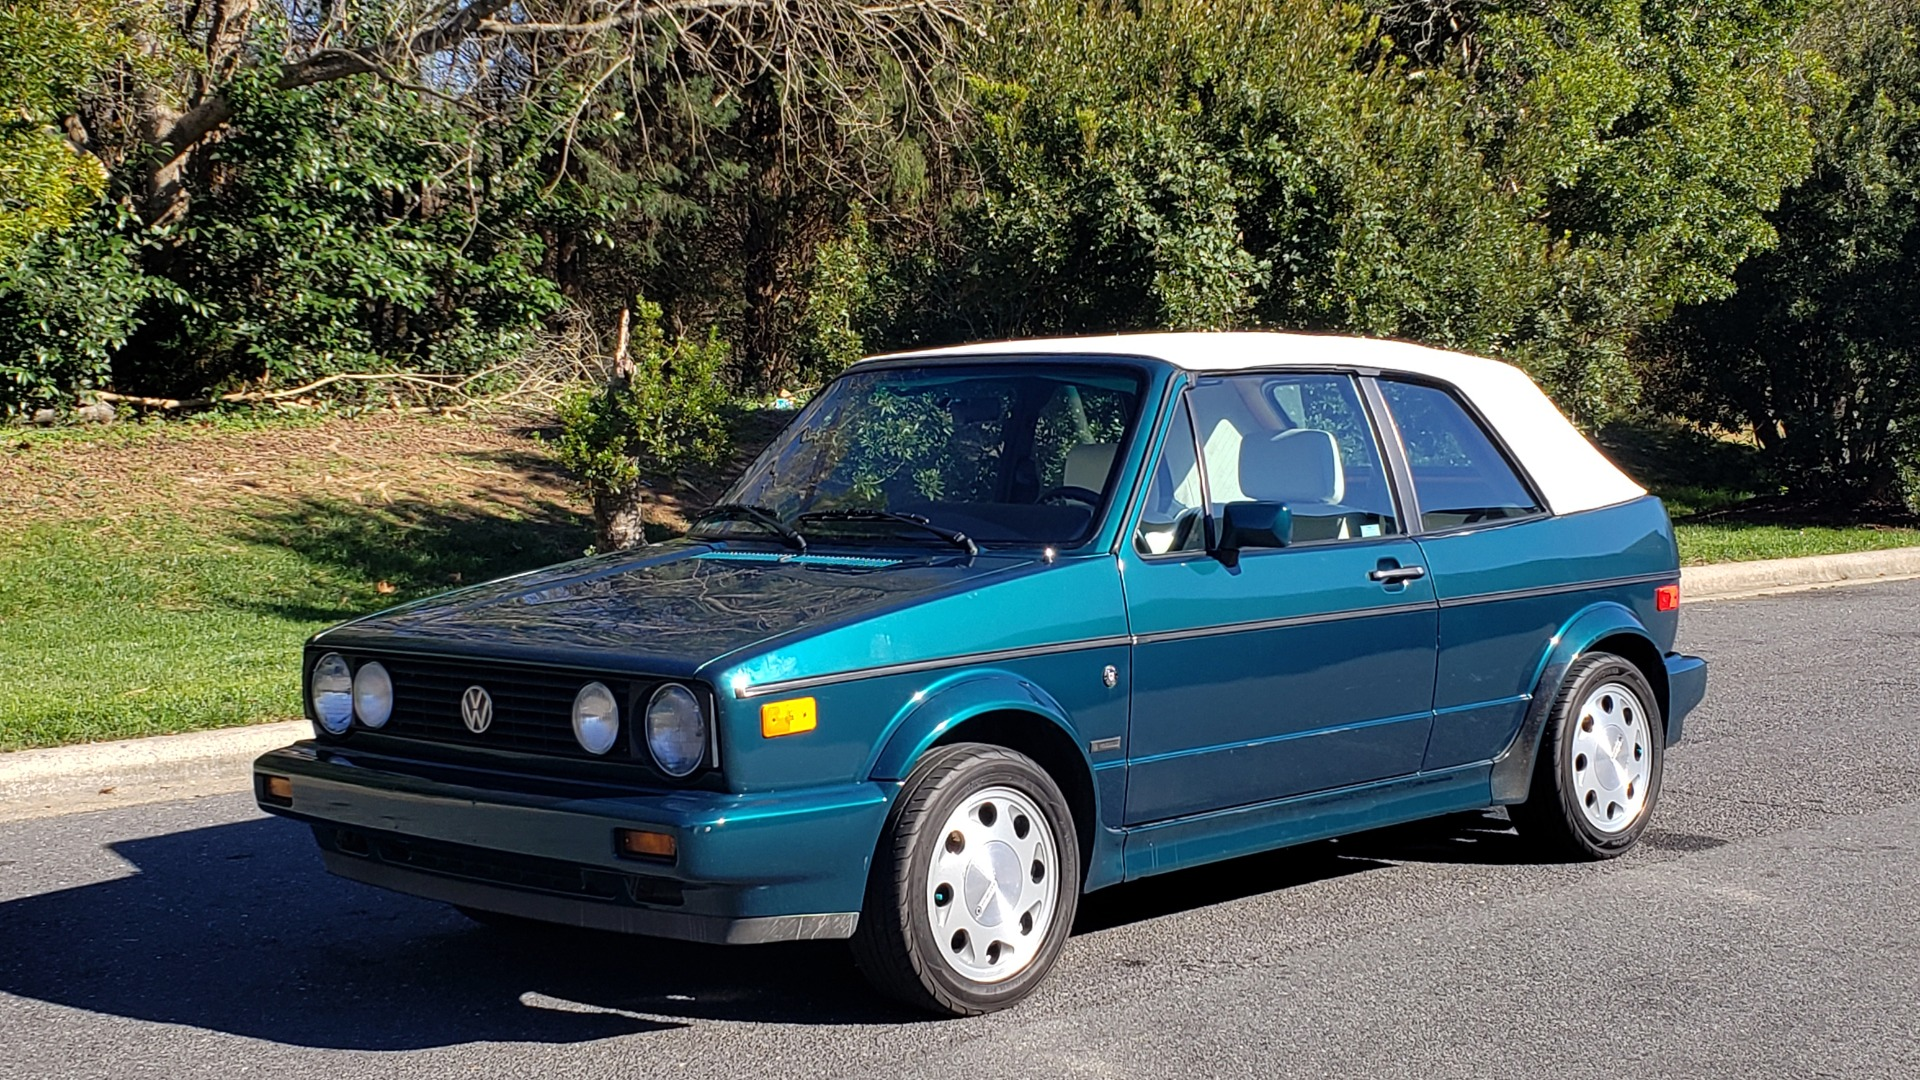 Used 1992 Volkswagen CABRIOLET 5-SPEED MAN / 4-CYL / AIR / 94K MILES / VERY CLEAN for sale Sold at Formula Imports in Charlotte NC 28227 3